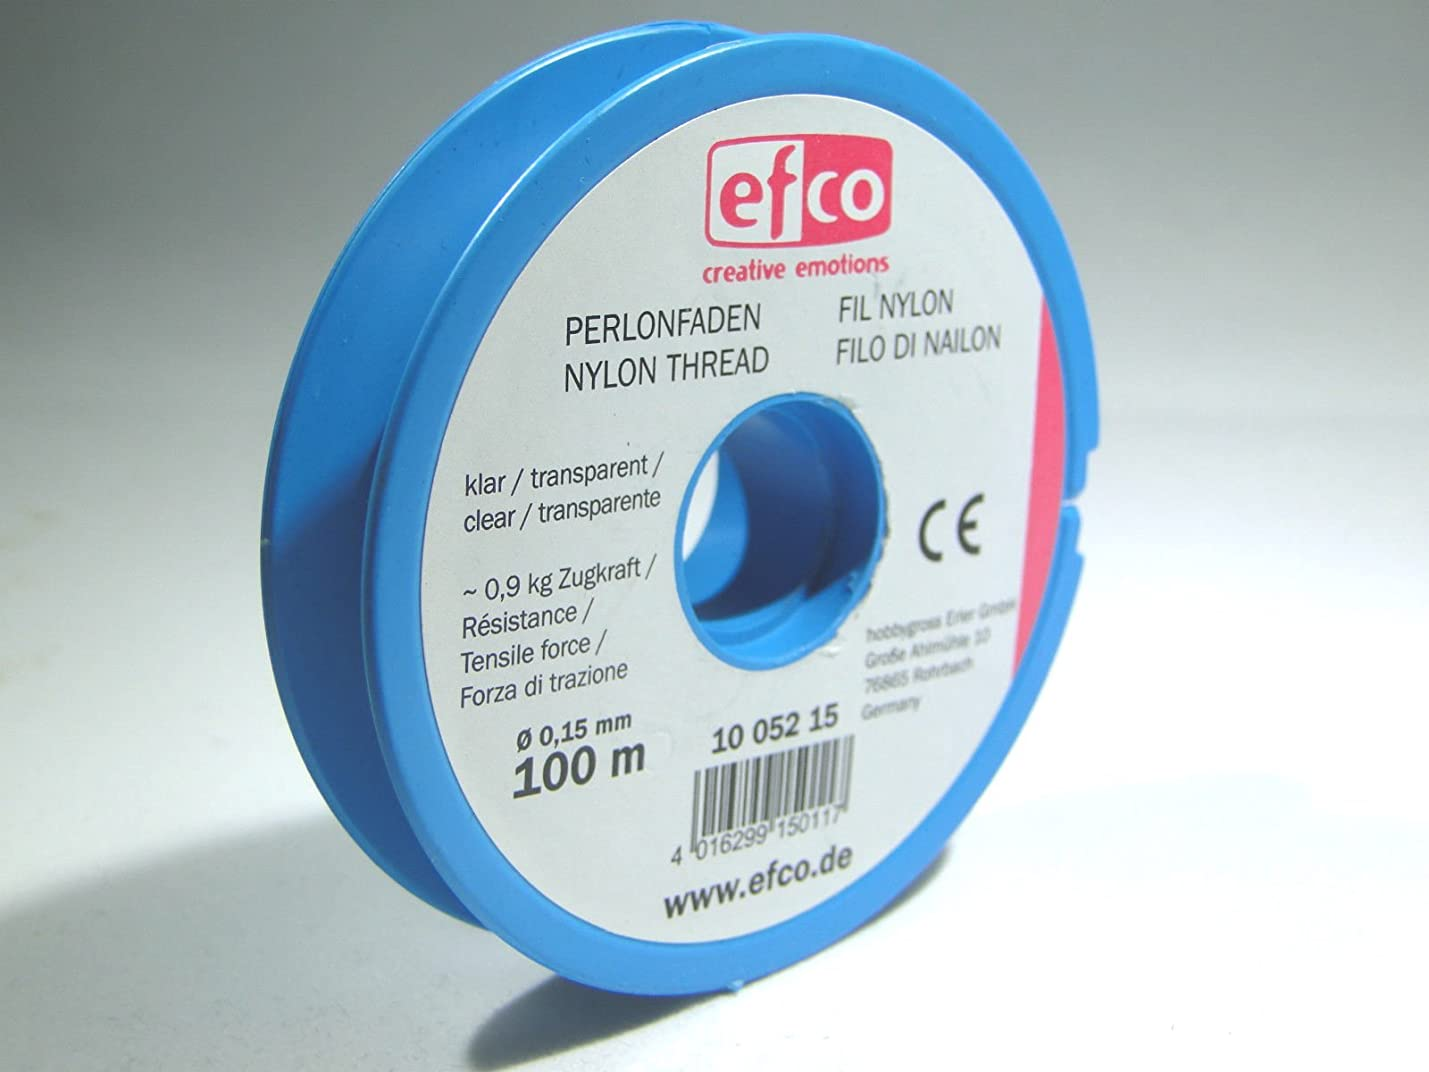 Efco Tensile Force Thread, Polyamide, Clear, 0.9 kg, 0.15 mm Diameter, 100 m vwehfbbqiiosw257